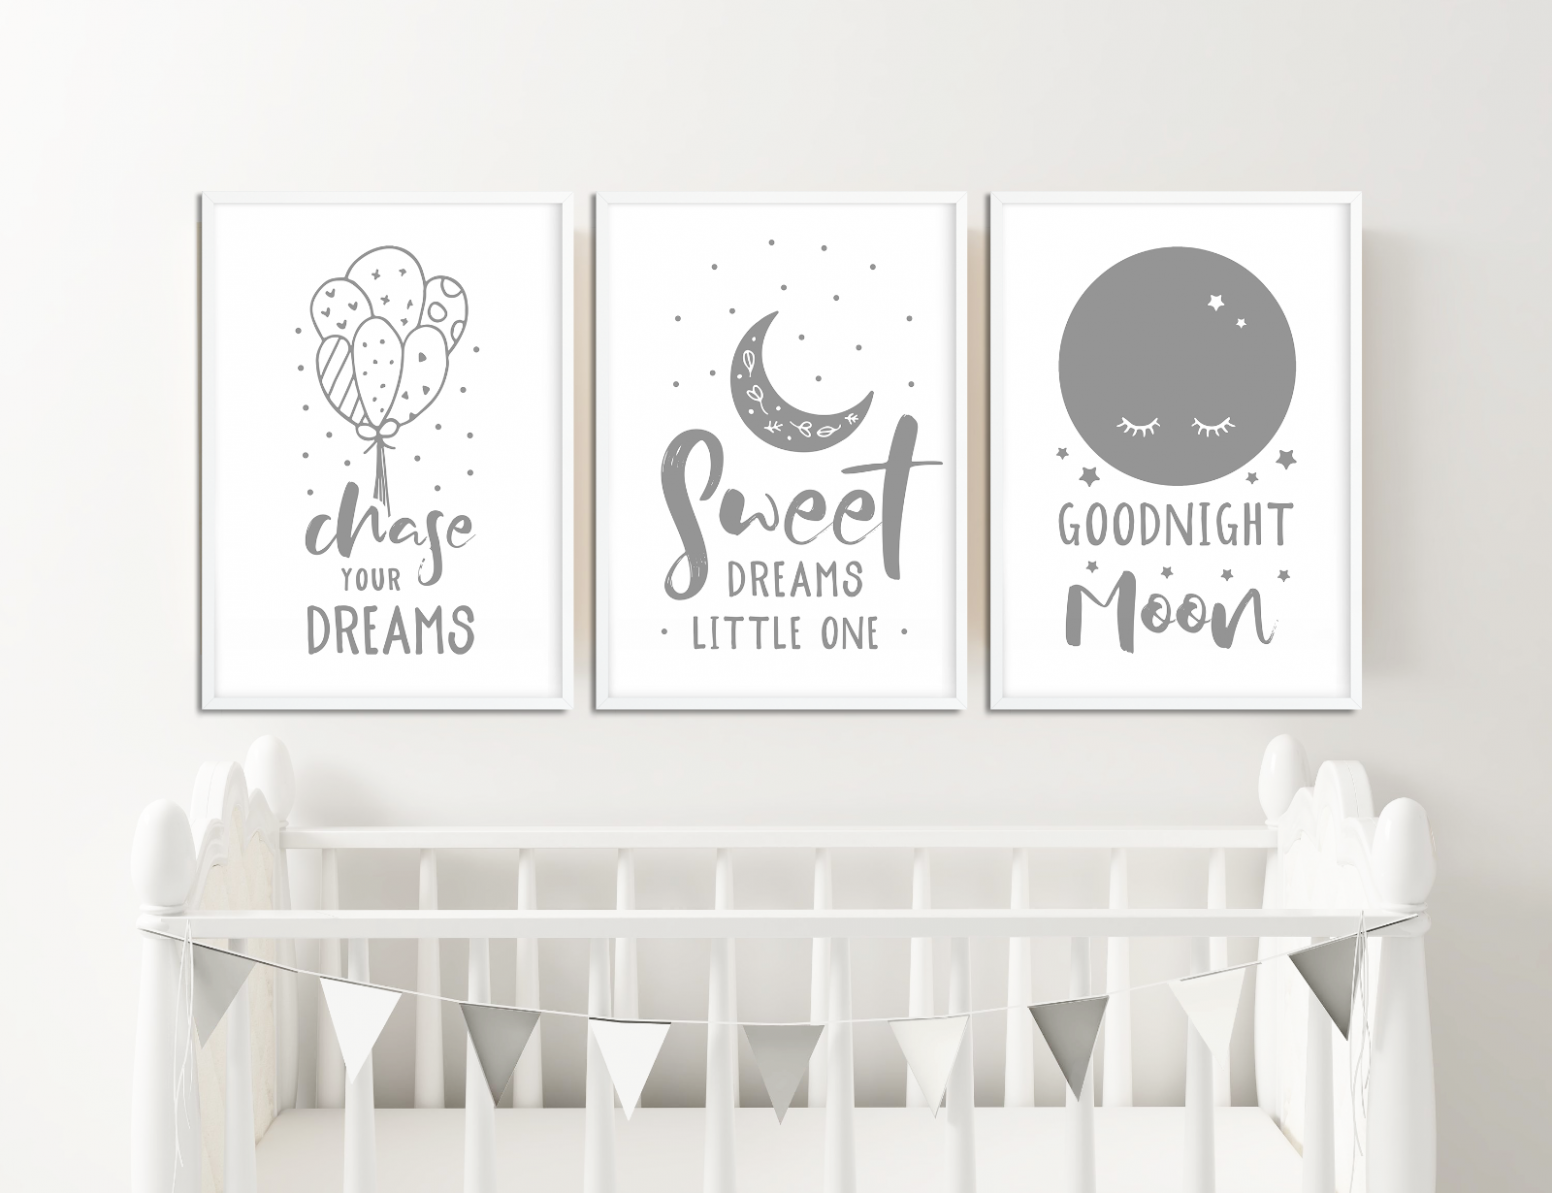 Details about Grey Nursery Prints Boys / Girls Bedroom Pictures Baby Room  Decor Ideas Baby